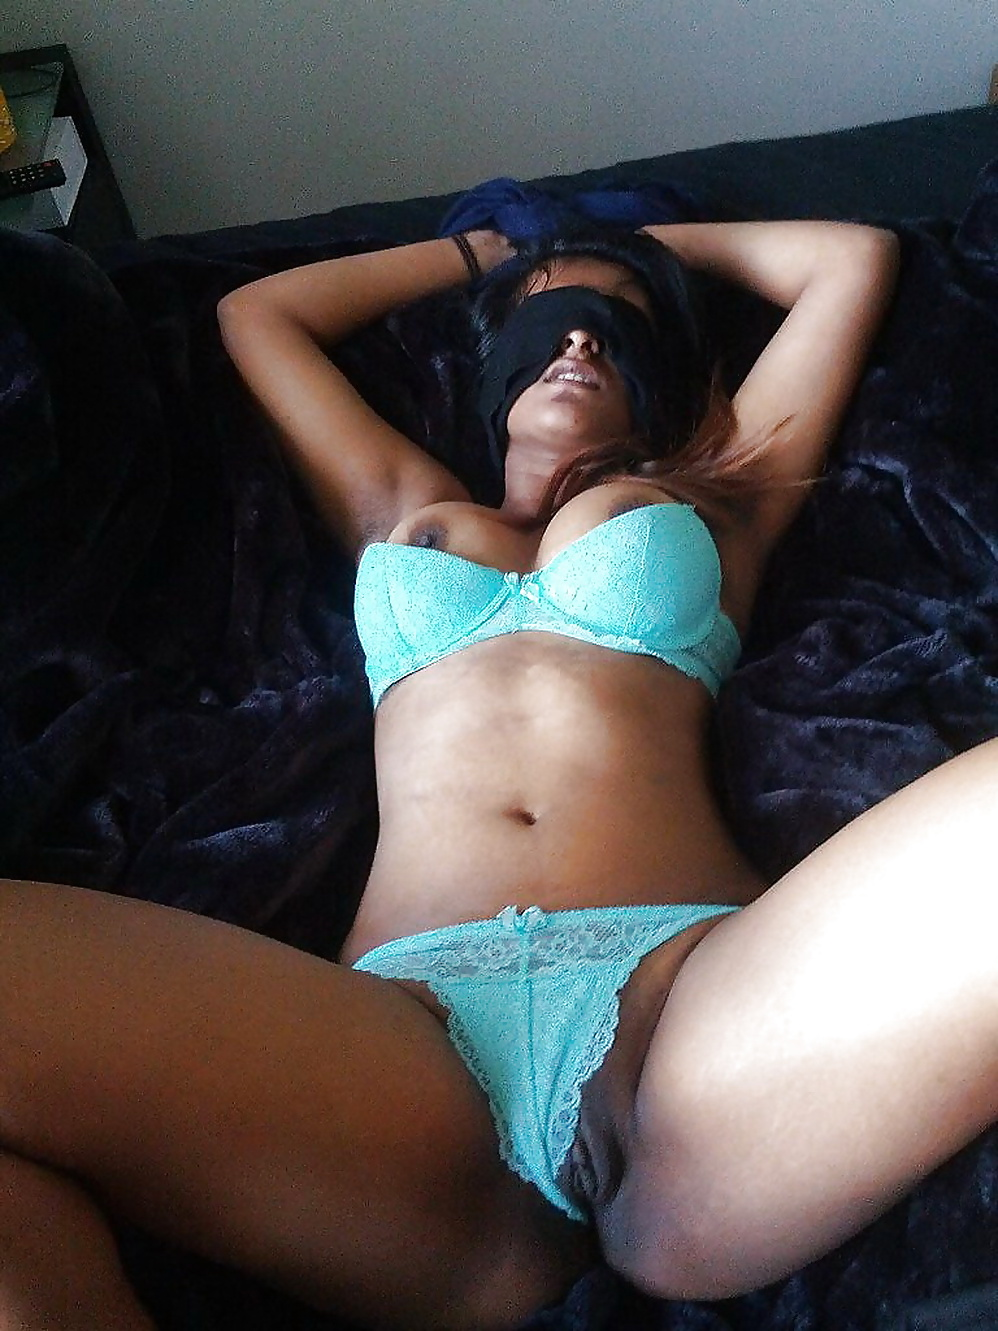 Nude gf images